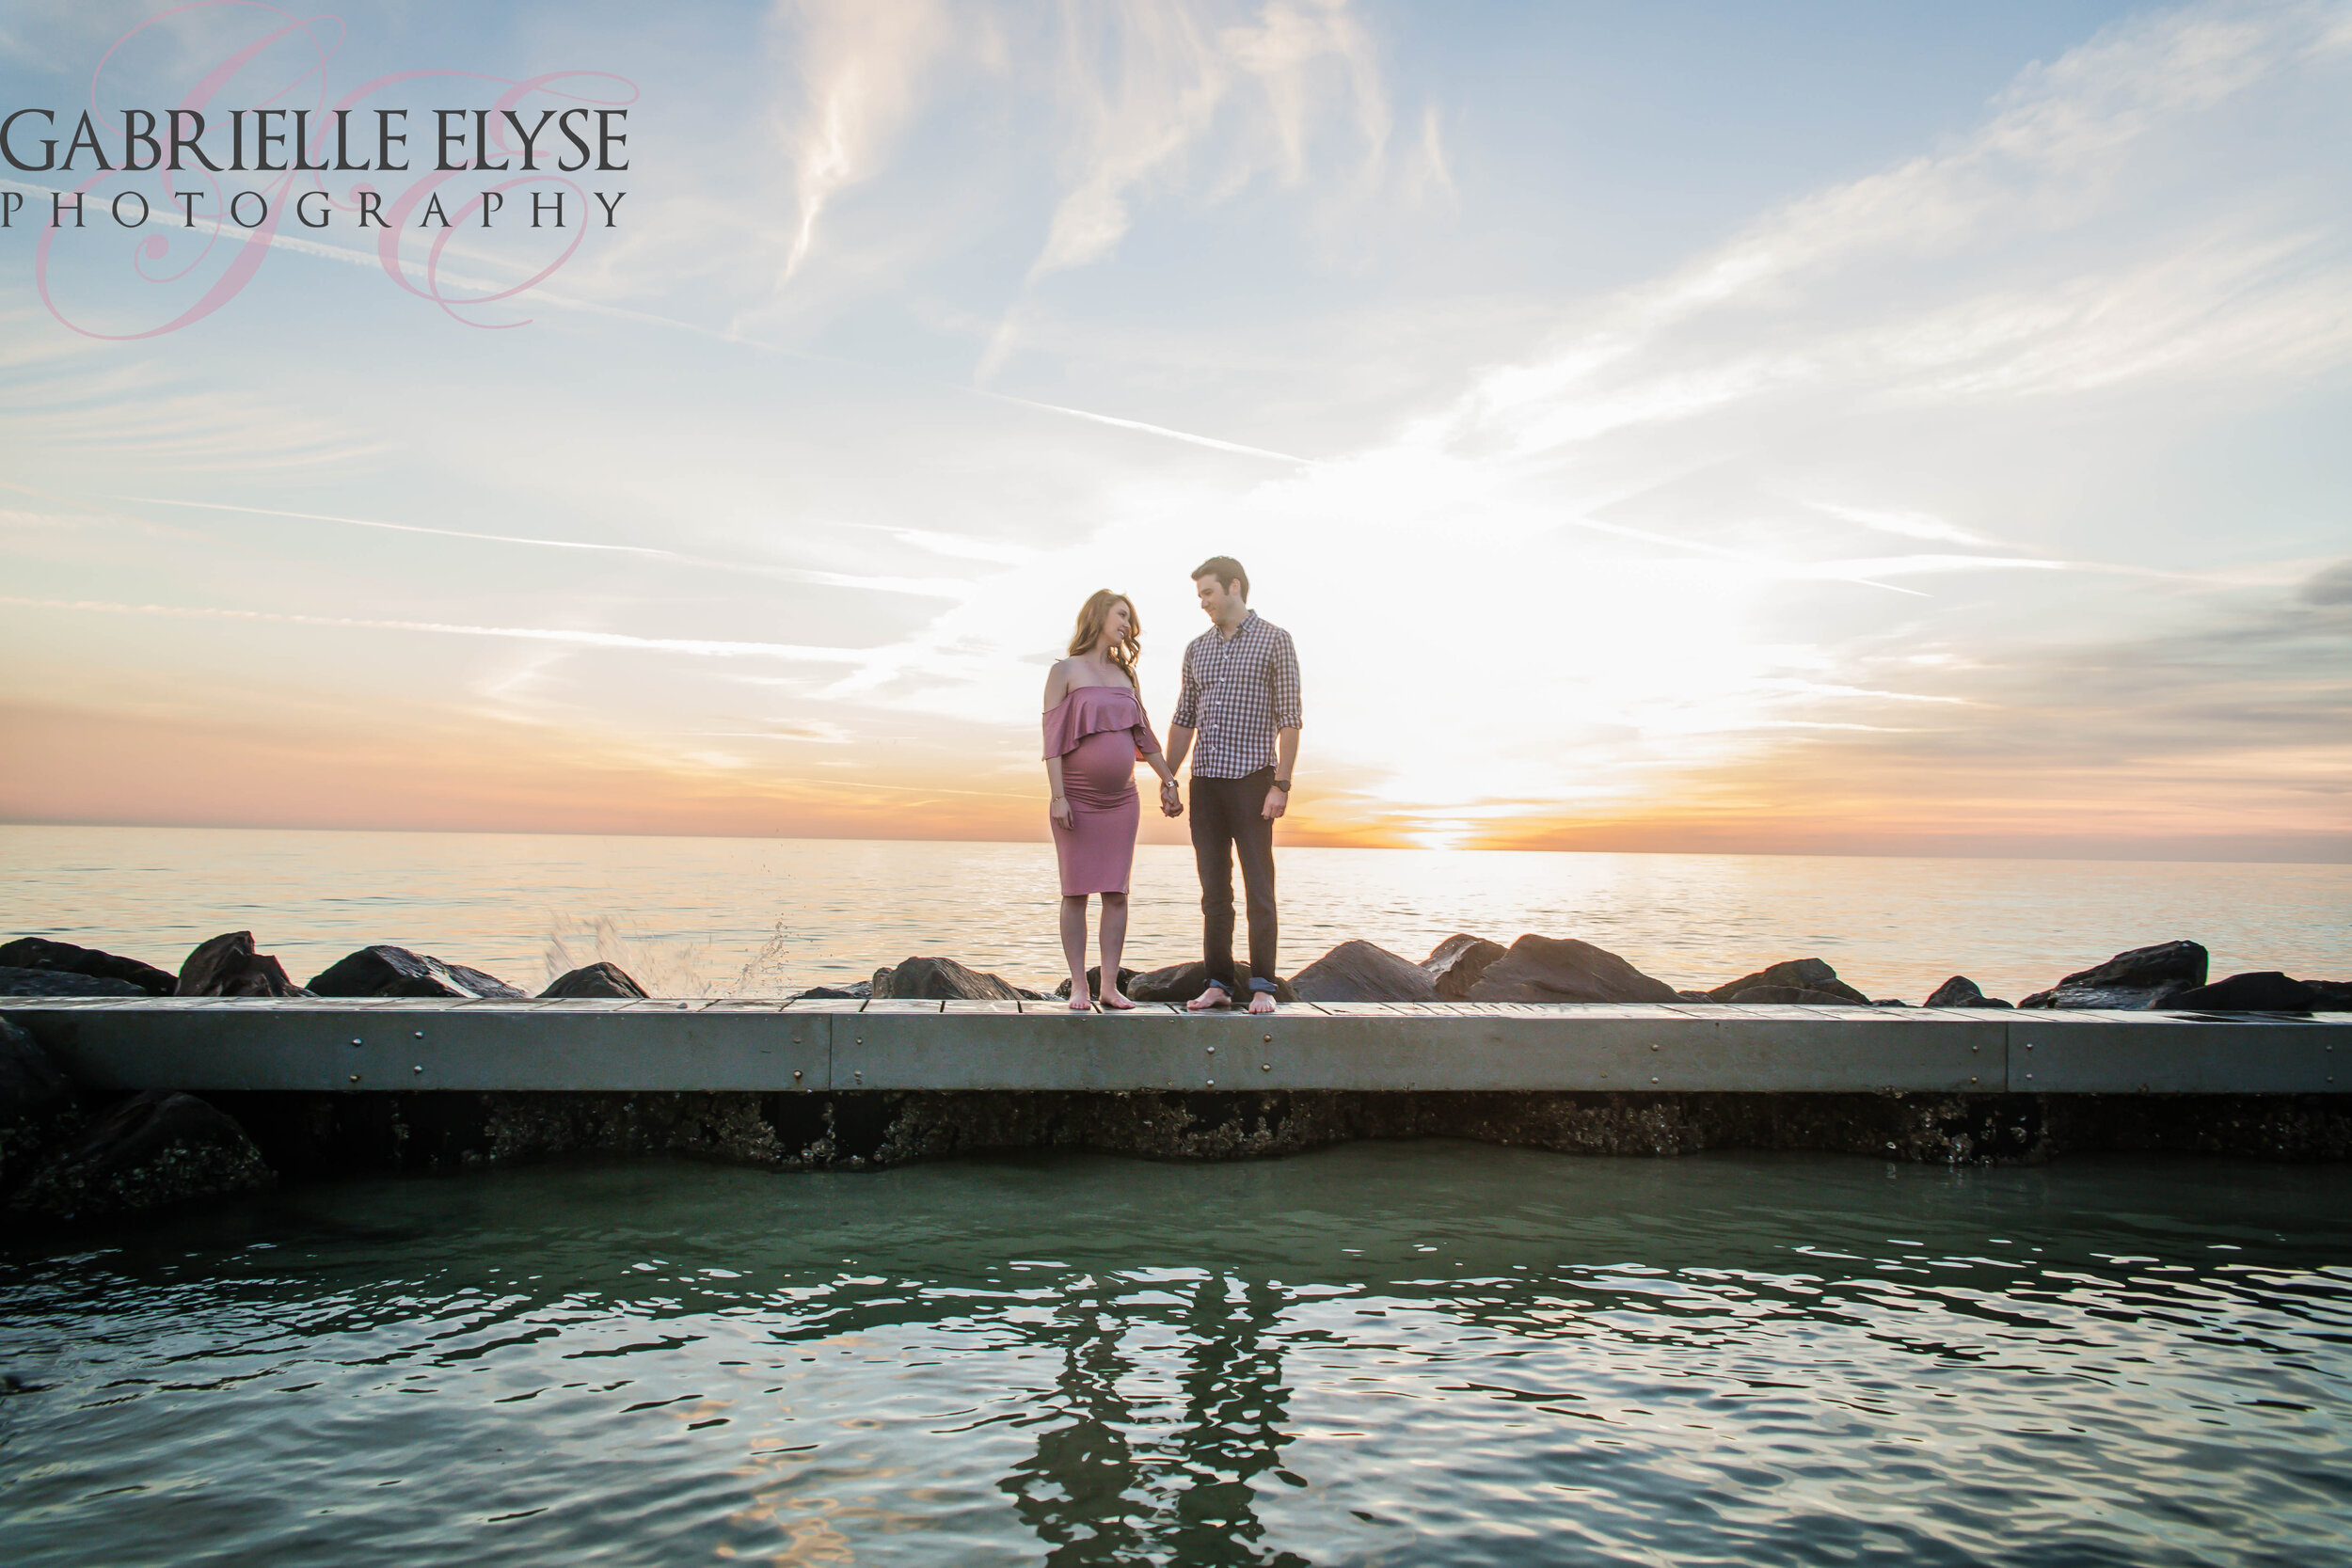 Beach sunset maternity session Gabrielle Elyse Photography